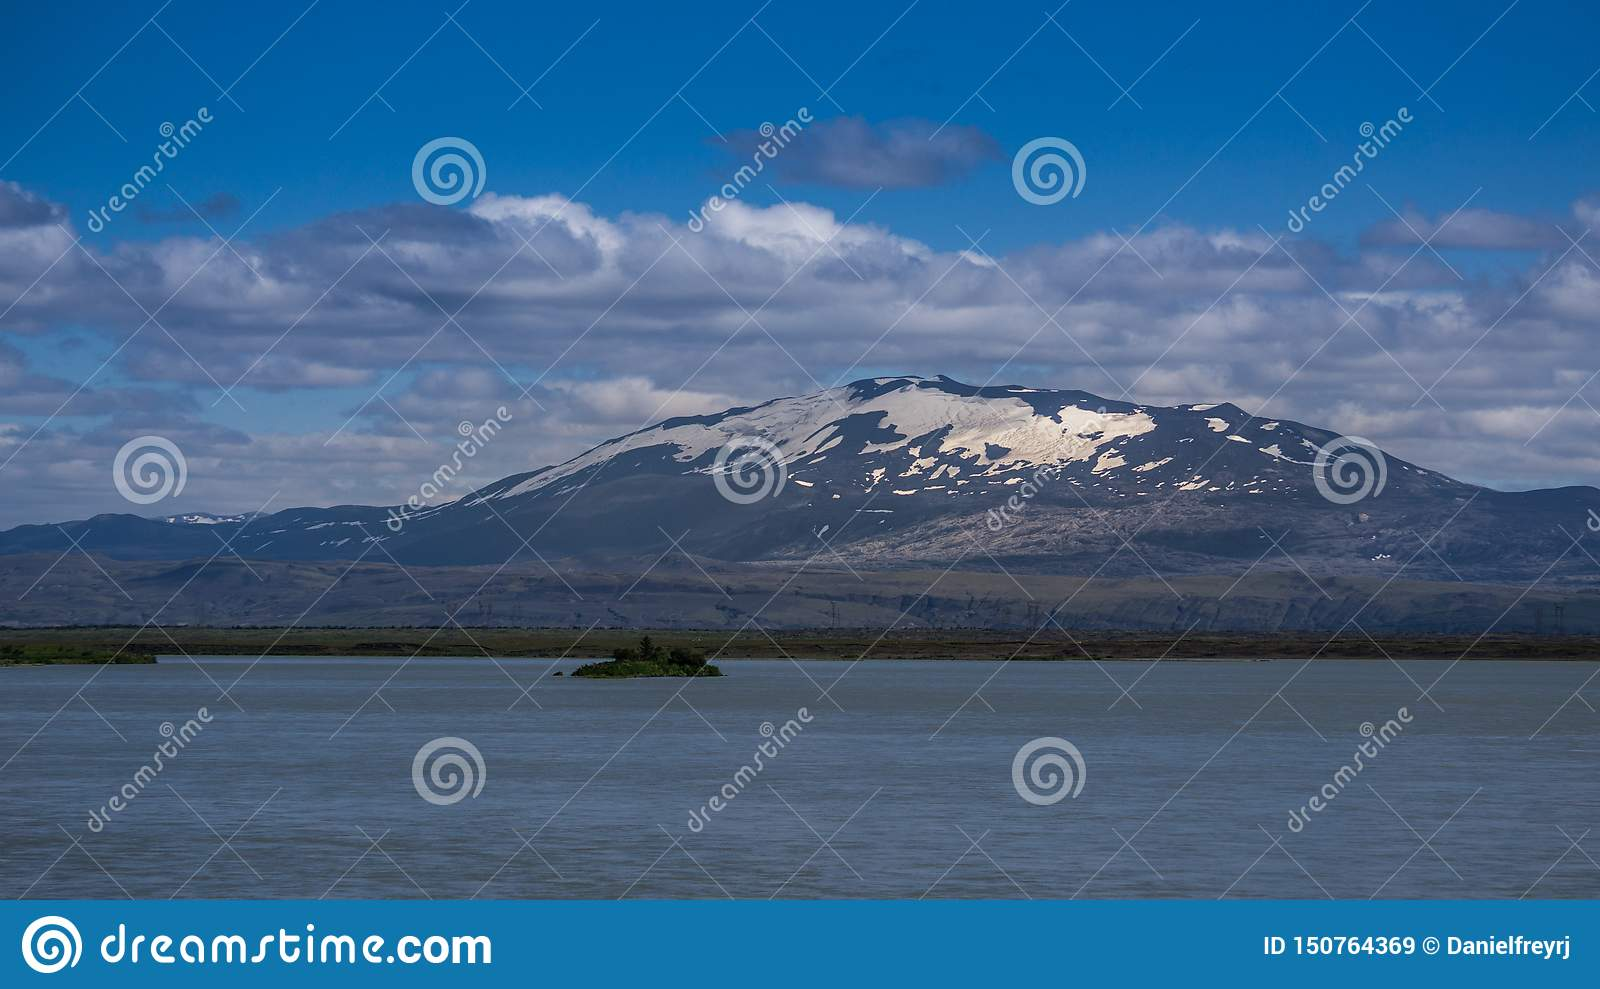 The infamous Hekla volcano, South Iceland